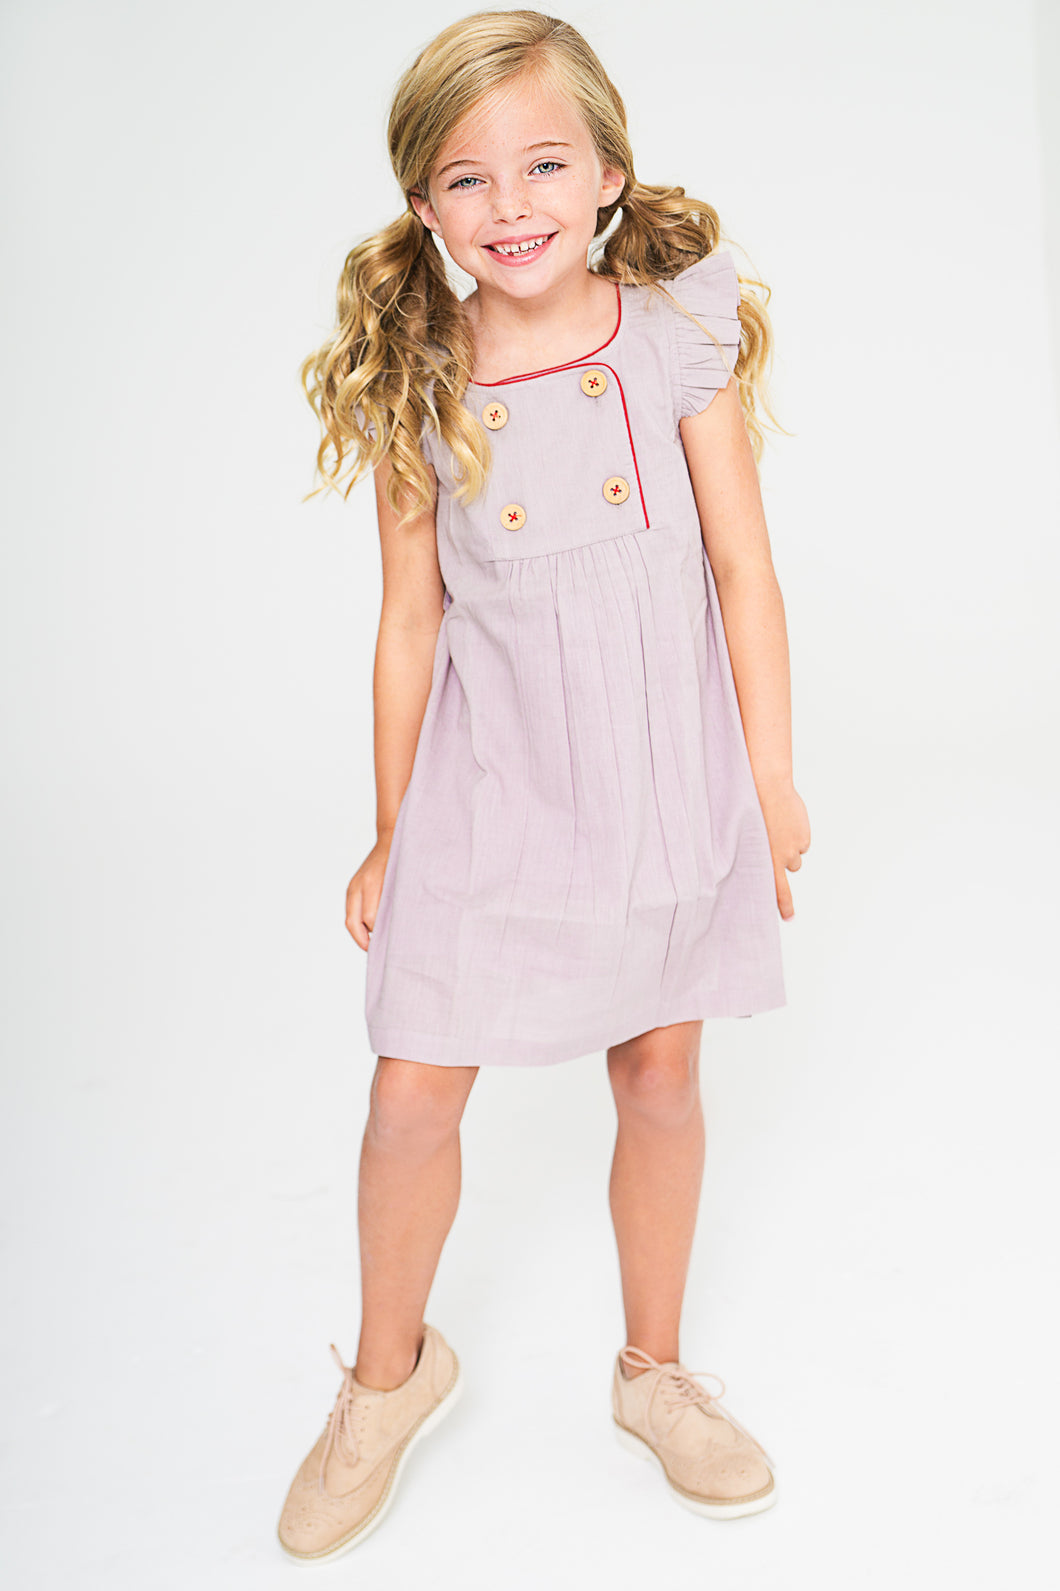 Lavender Shift Dress With Button Detail and Red Trim - Kids Wholesale Boutique Clothing, Dress - Girls Dresses, Yo Baby Wholesale - Yo Baby